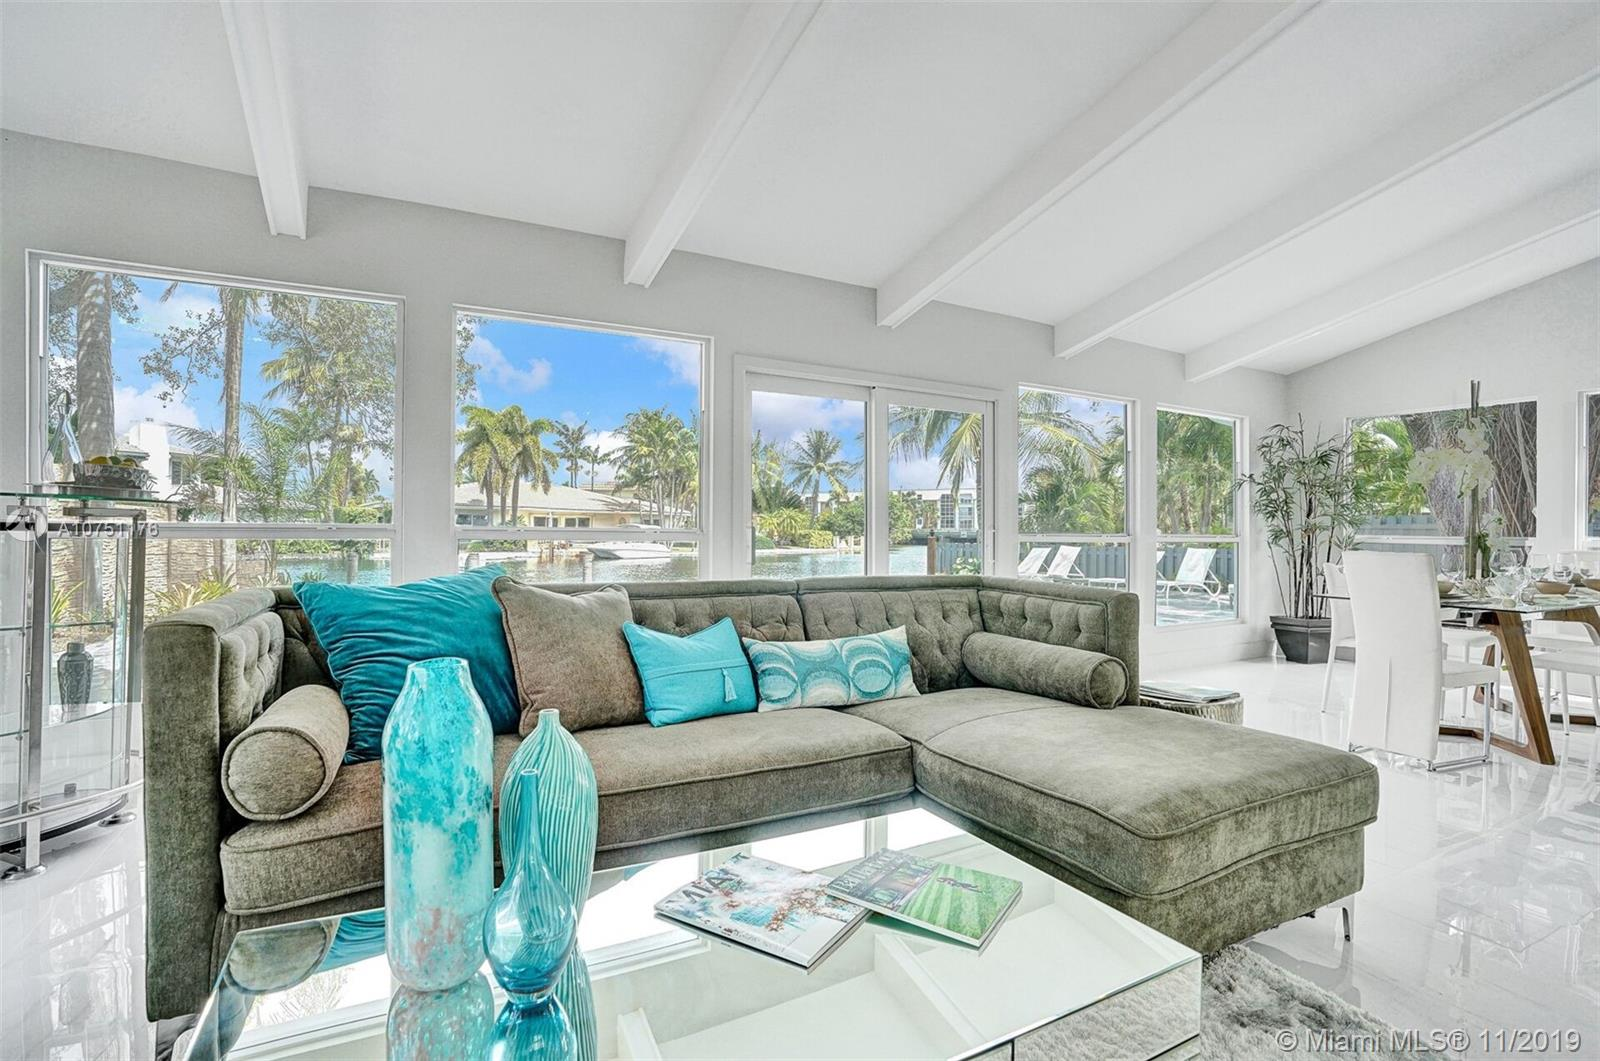 """Live the Lifestyle Of Luxury Waterfront  In This Estate Home,2 Bed 2 Bath High End Renovation In E. Wilton Manors.""""Mid Century Marvel w/ Almost 1900 Sq. Ft.w/ High Volume Ceilings, & Open Concept.Your Chef's Kitchen has Kitchen-Aid Applic.,Custom Quartz Countertops,Mosaic Back  Splash, Familyroom & Diningroom have High Volume Ceilings. Entertain in Your Fireplace Living room. Have Fun Pool Parties with your Diving Pool, w/ Marble Pavers, Dock Your Vessel anytime.Newly Designed Master Suite w/Built in Custom Wardrobes & Views Of the Pool & the River Enjoy Your Spa Styled Master bath w/ Upgrades.Laundryroom & a Bonus Storage room, Perfectly Positioned for the Possibilities to Convert the Garage to Your Third Bedroom.Staged By """"Florida Stage Hands & Design's """" Truly An Incomparable Residence."""